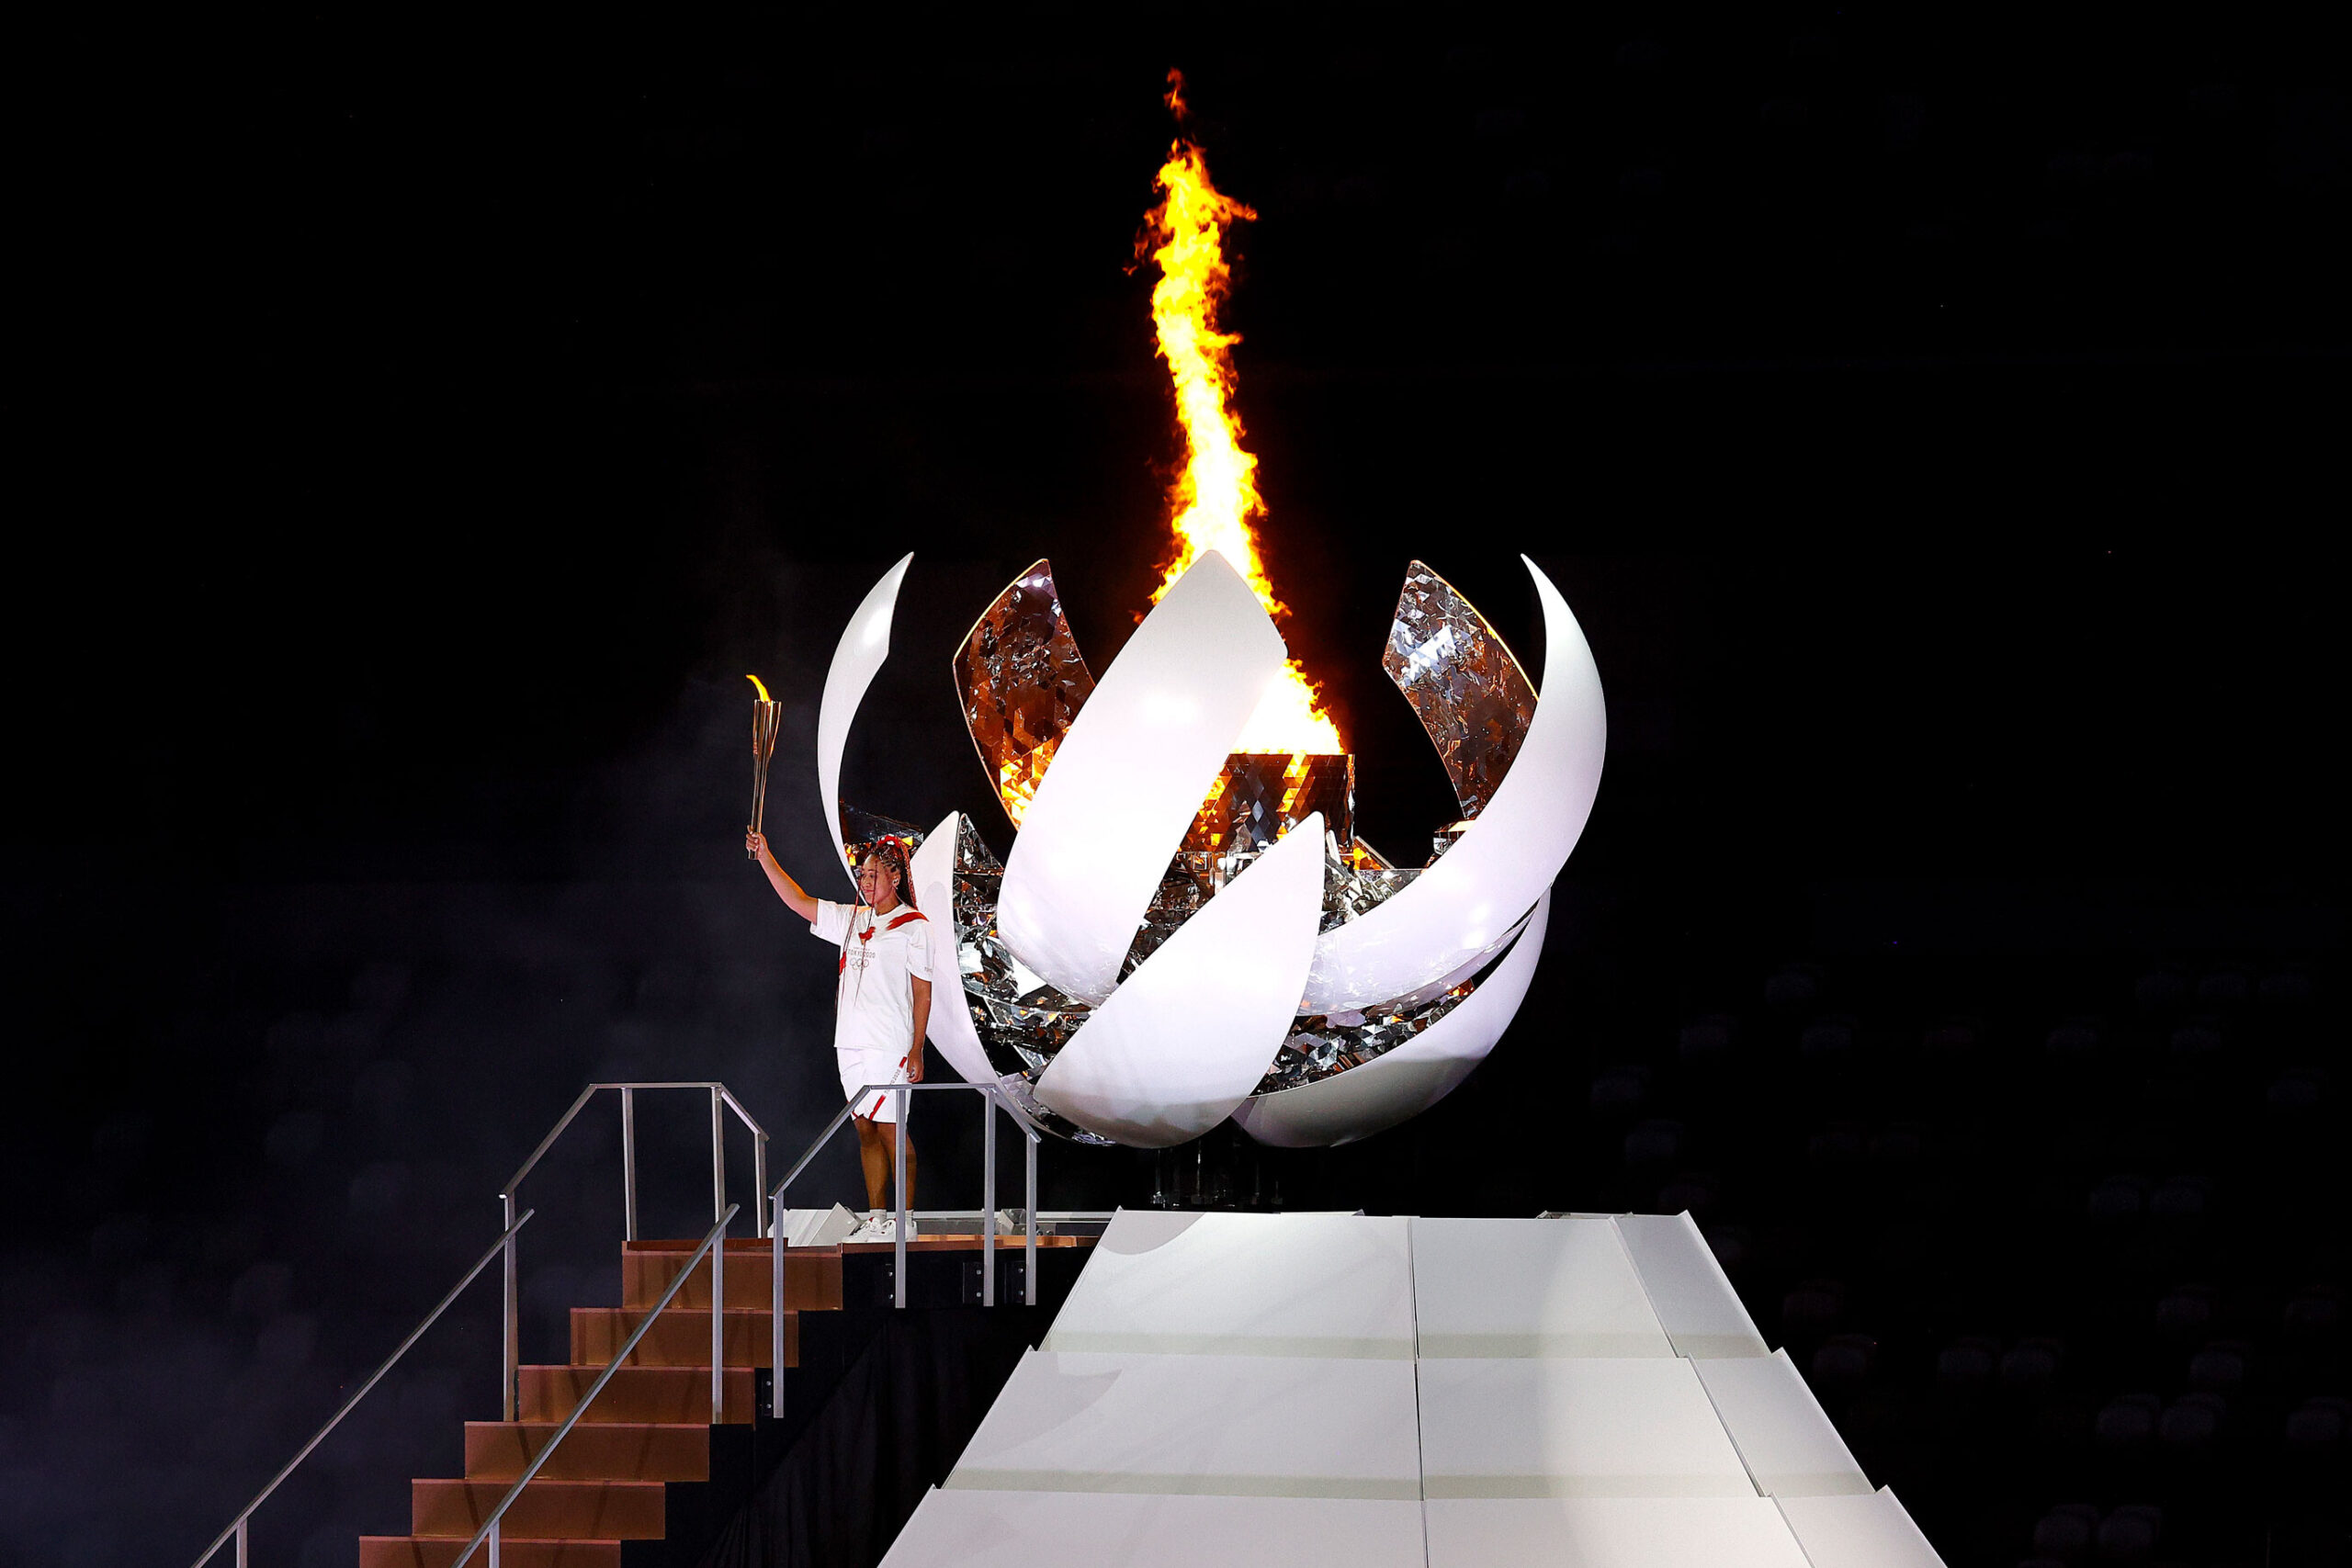 <i>Maddie Meyer/Getty Images</i><br/>The torch has been lit at the Tokyo Olympics and the opening weekend will feature competition in men's gymnastics